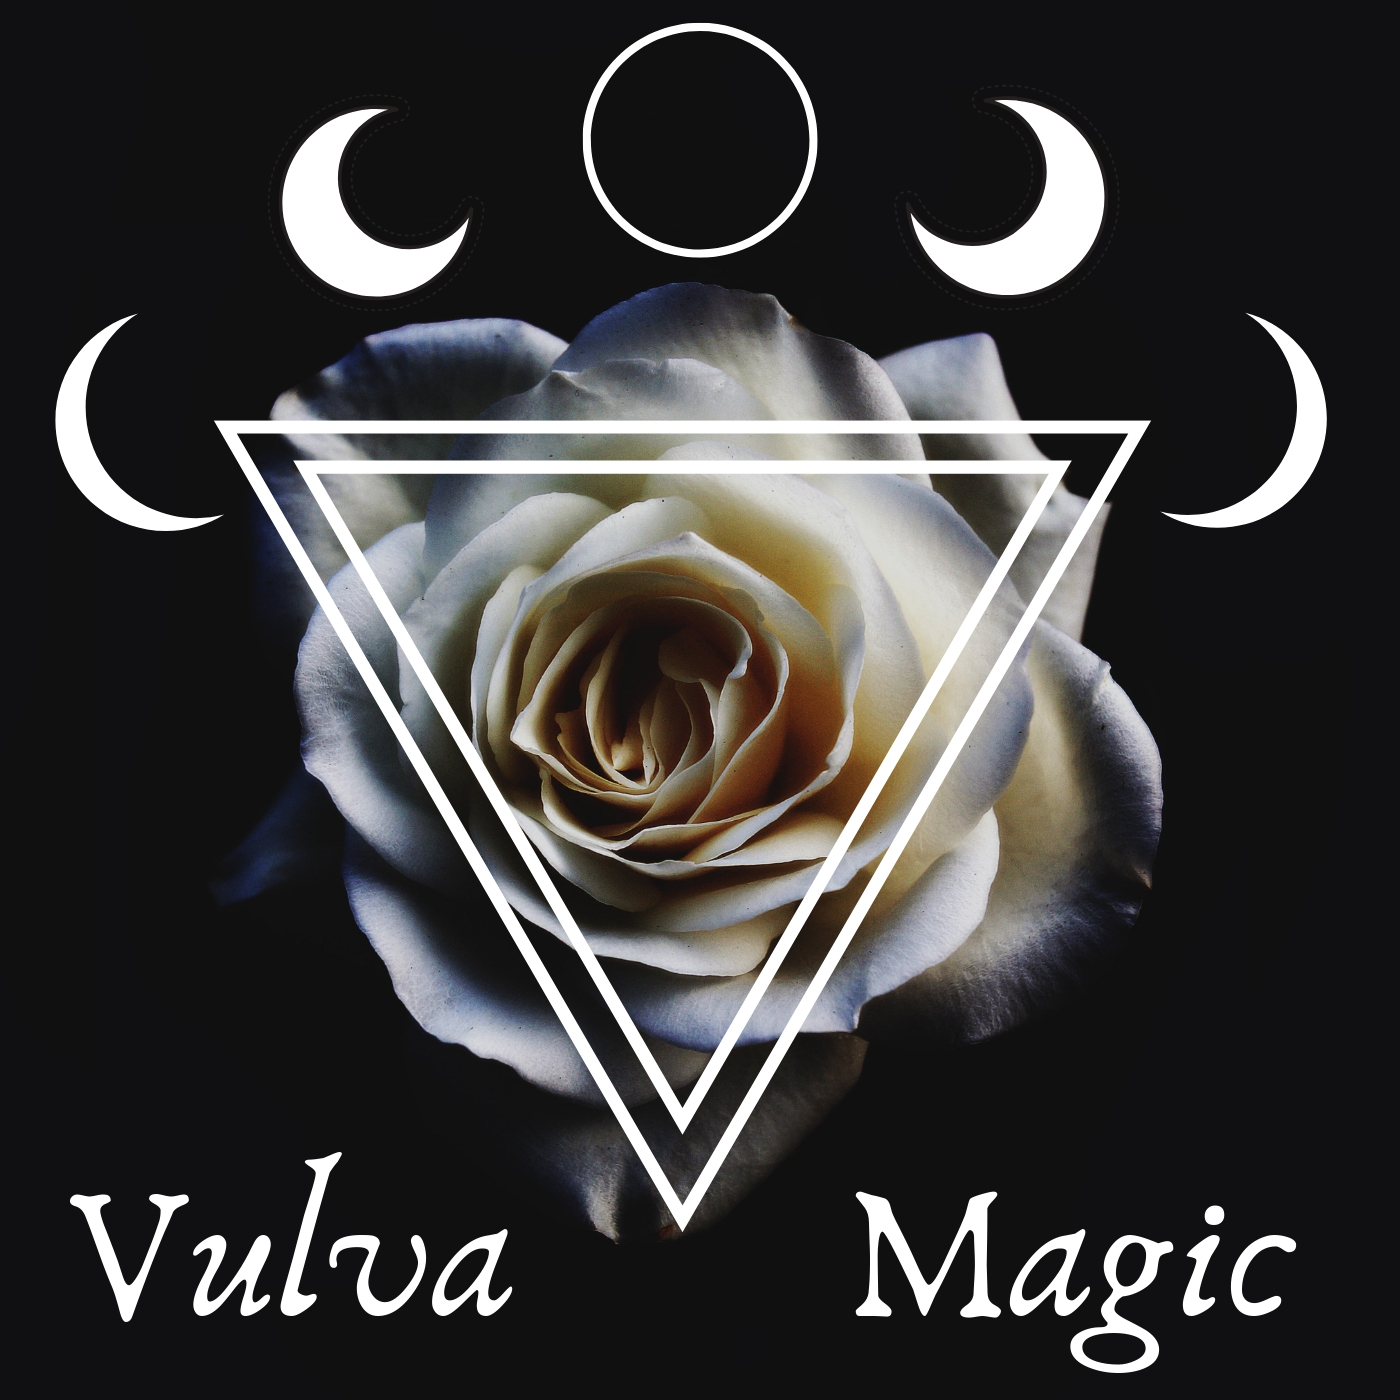 Vulva Magic